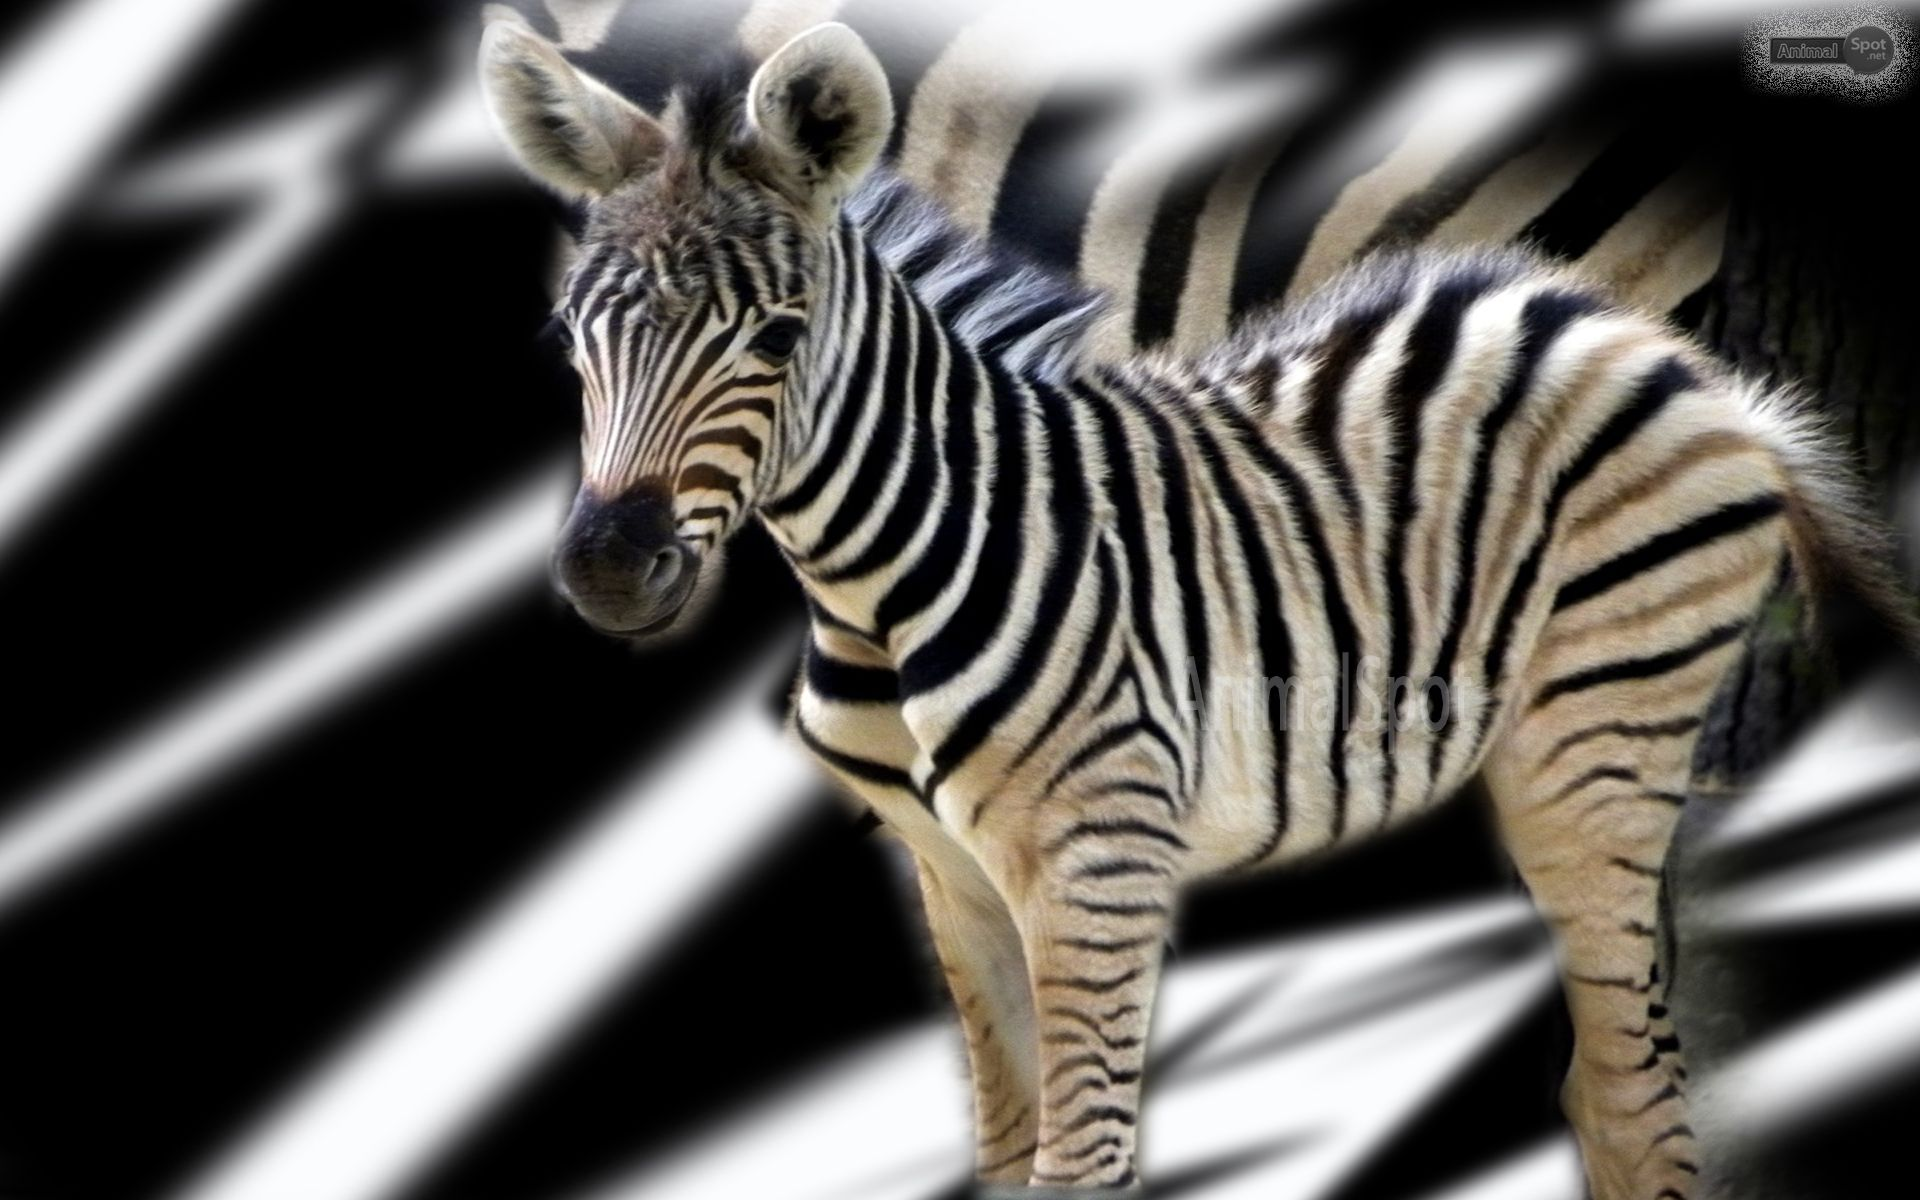 wallpaper with a group of zebras hd animals wallpapers a· zebra wallpaperfree